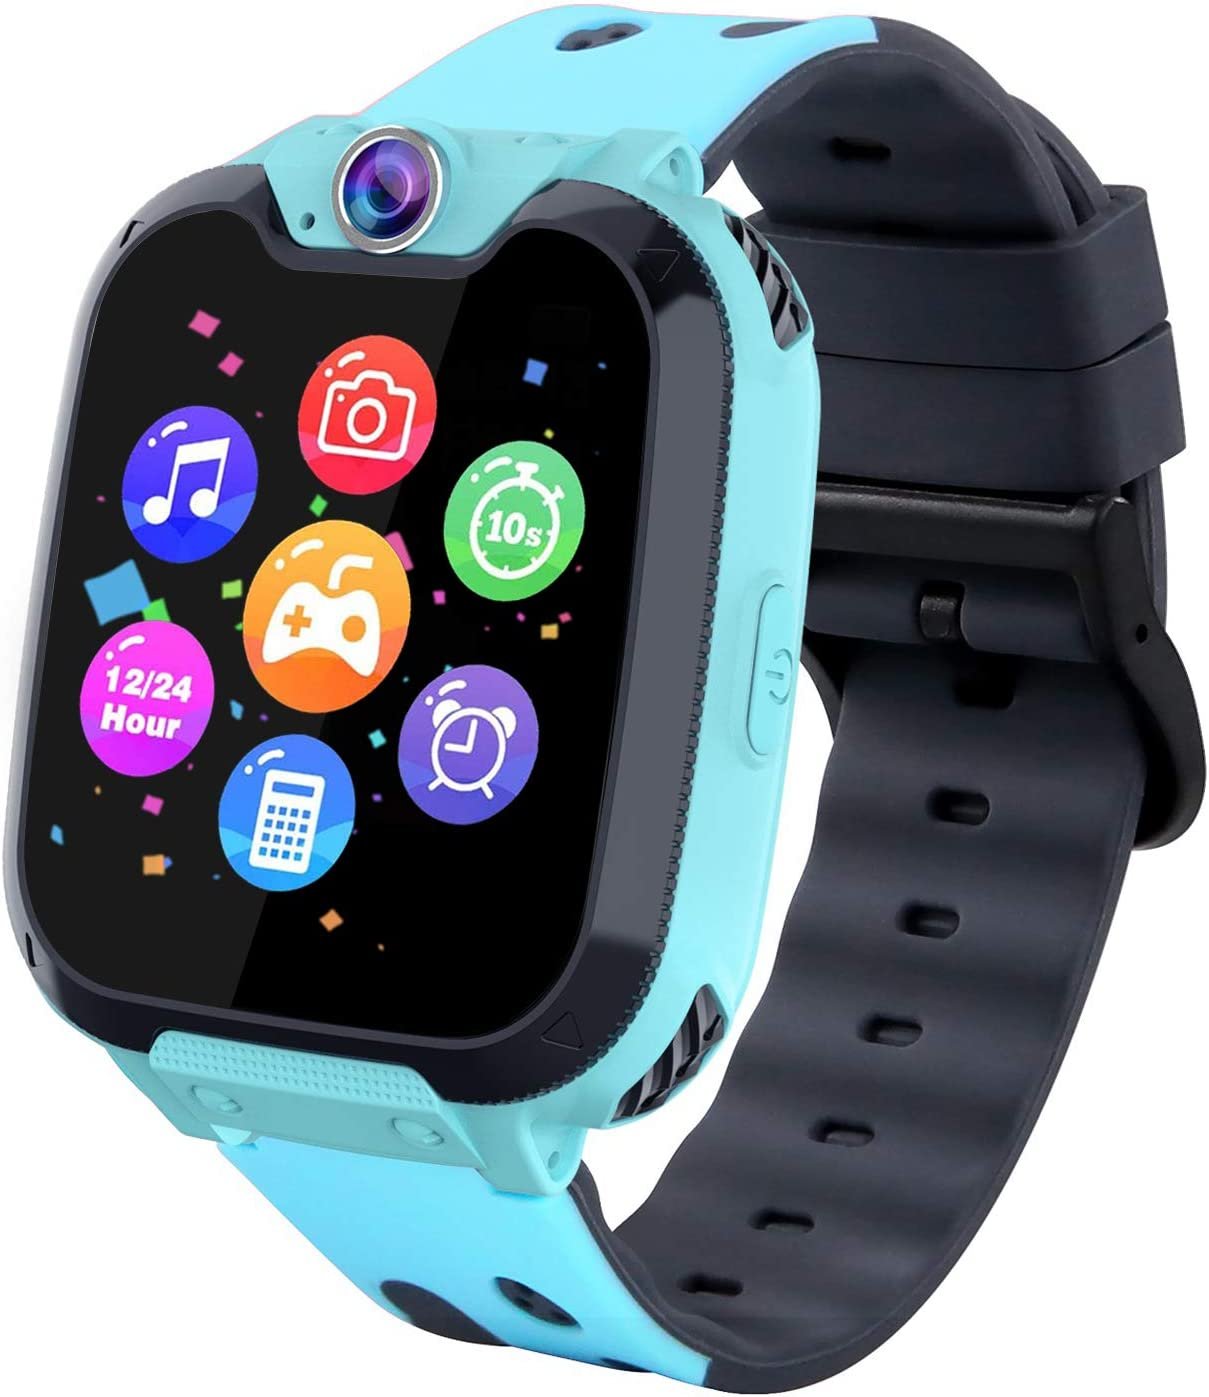 Kids Phone Smartwatch with Games & MP3 Player - 1.54 inch Touch Screen Watch Phone 2 Way Call Music Player Game Funny Camera Alarm Clock Children School Gift for 3-10 Years Old Boys Girls, Blue